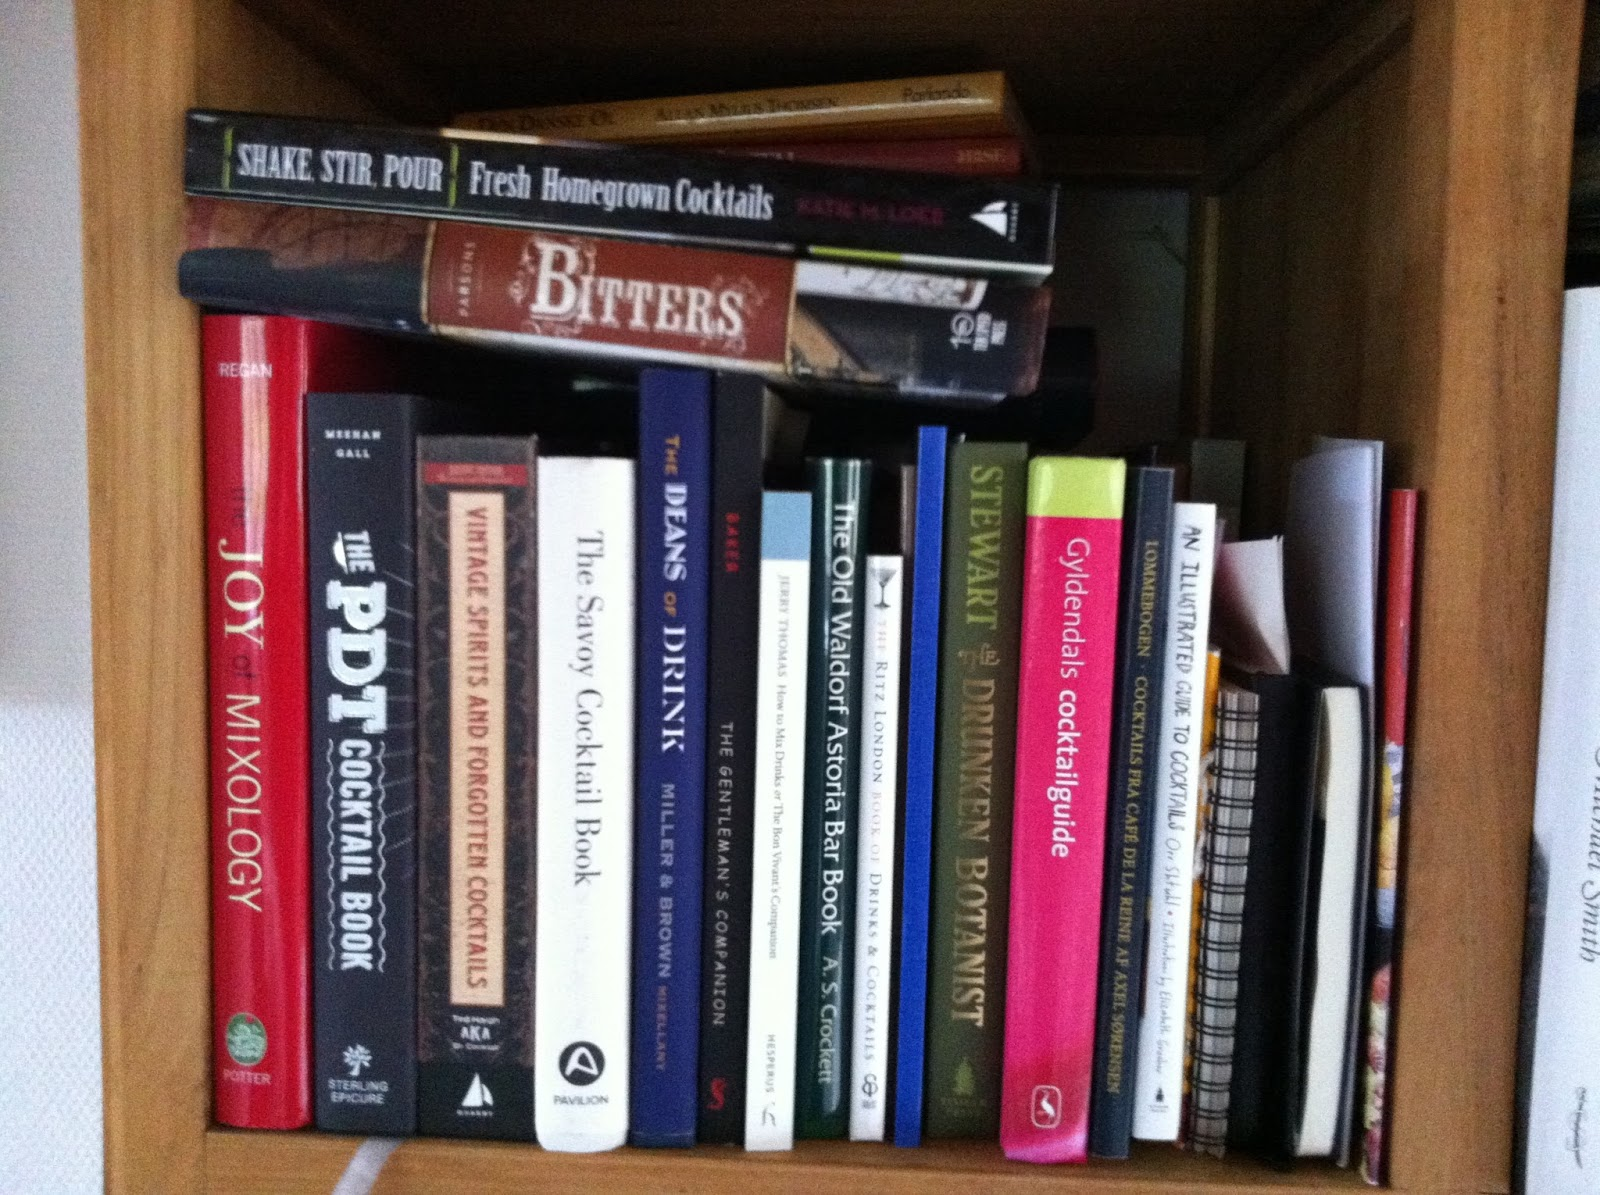 My 5 best cocktail books